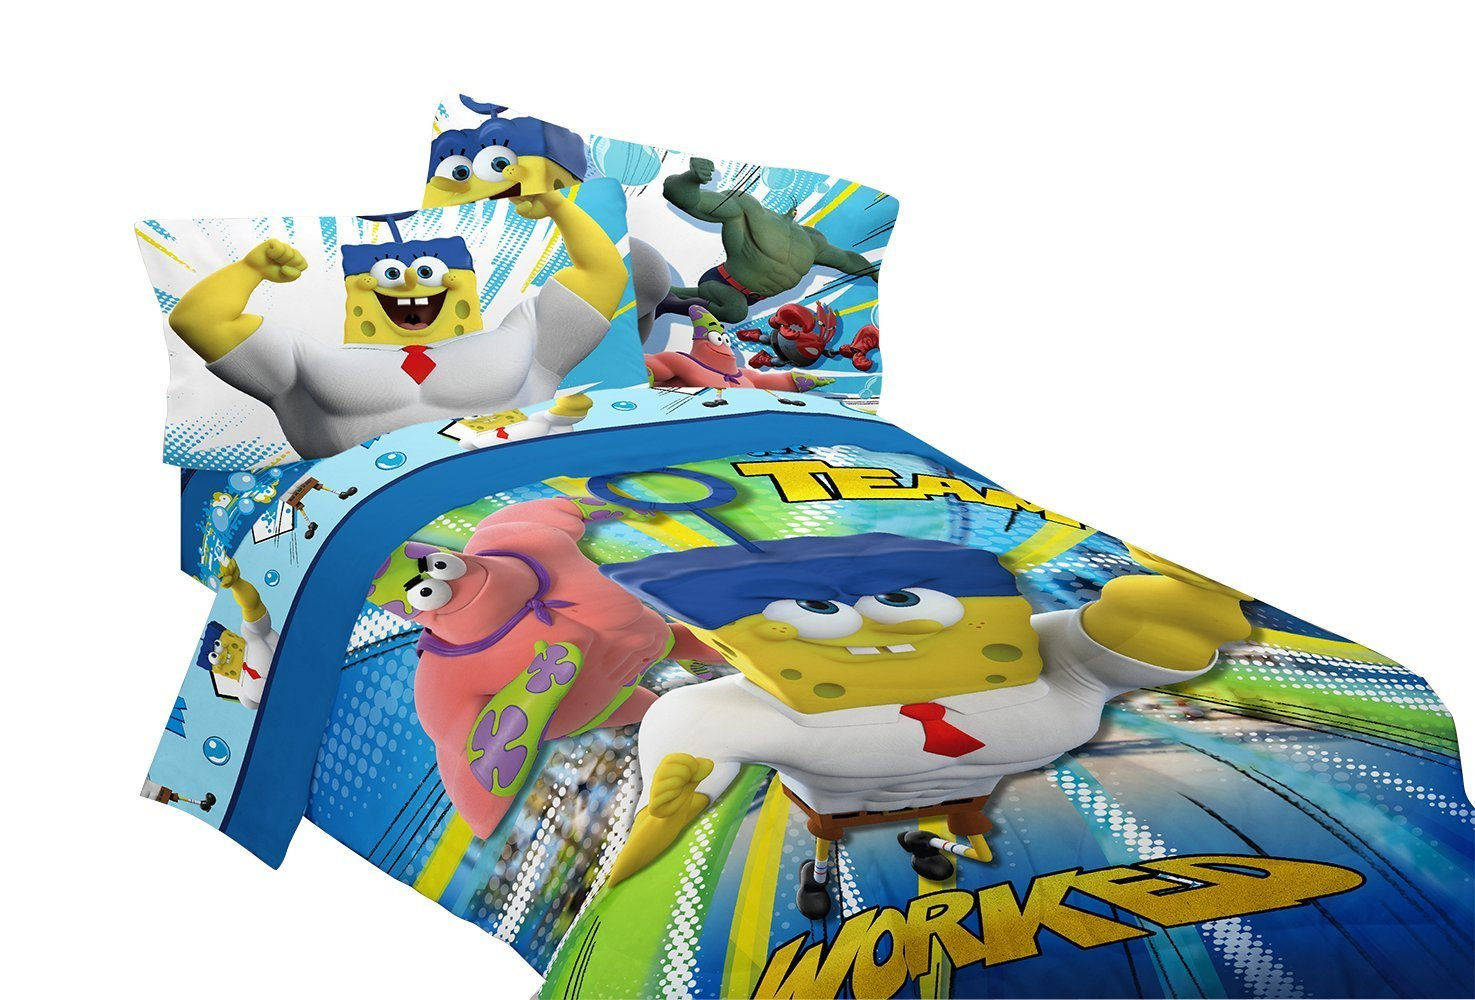 Nickelodeon Sponge Bob Mr Awesome Twin/Full Reversible Comforter, 72 by 86-Inch